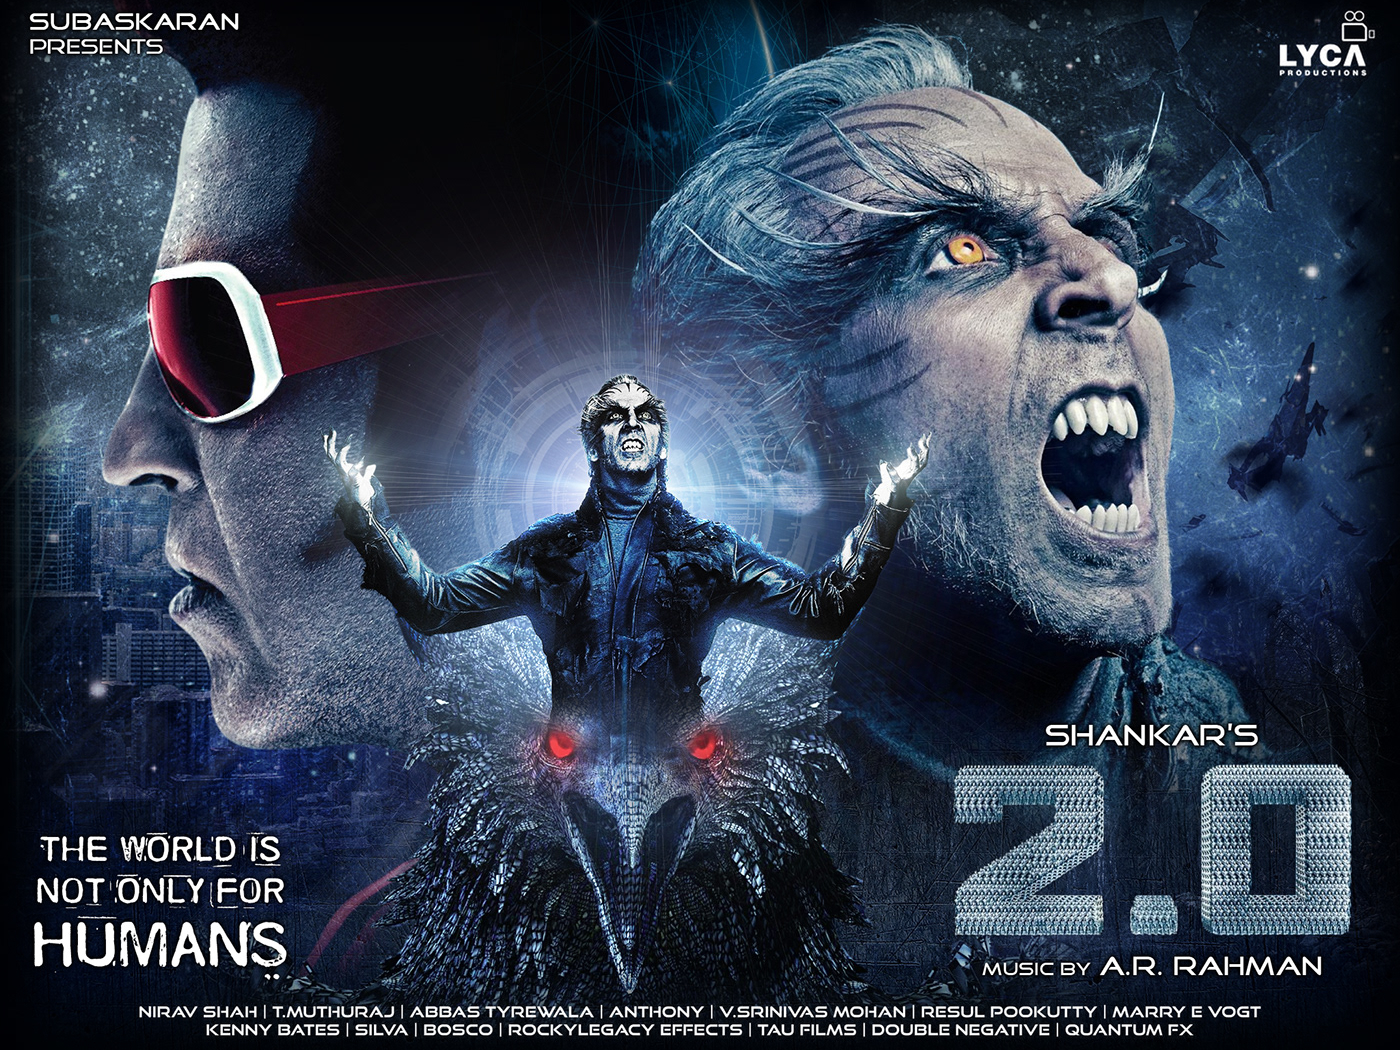 New Hindi Movei 2018 2019 Bolliwood: 2.0 Movie 3D Show 02-12-2018 Sunday « TamilFilm